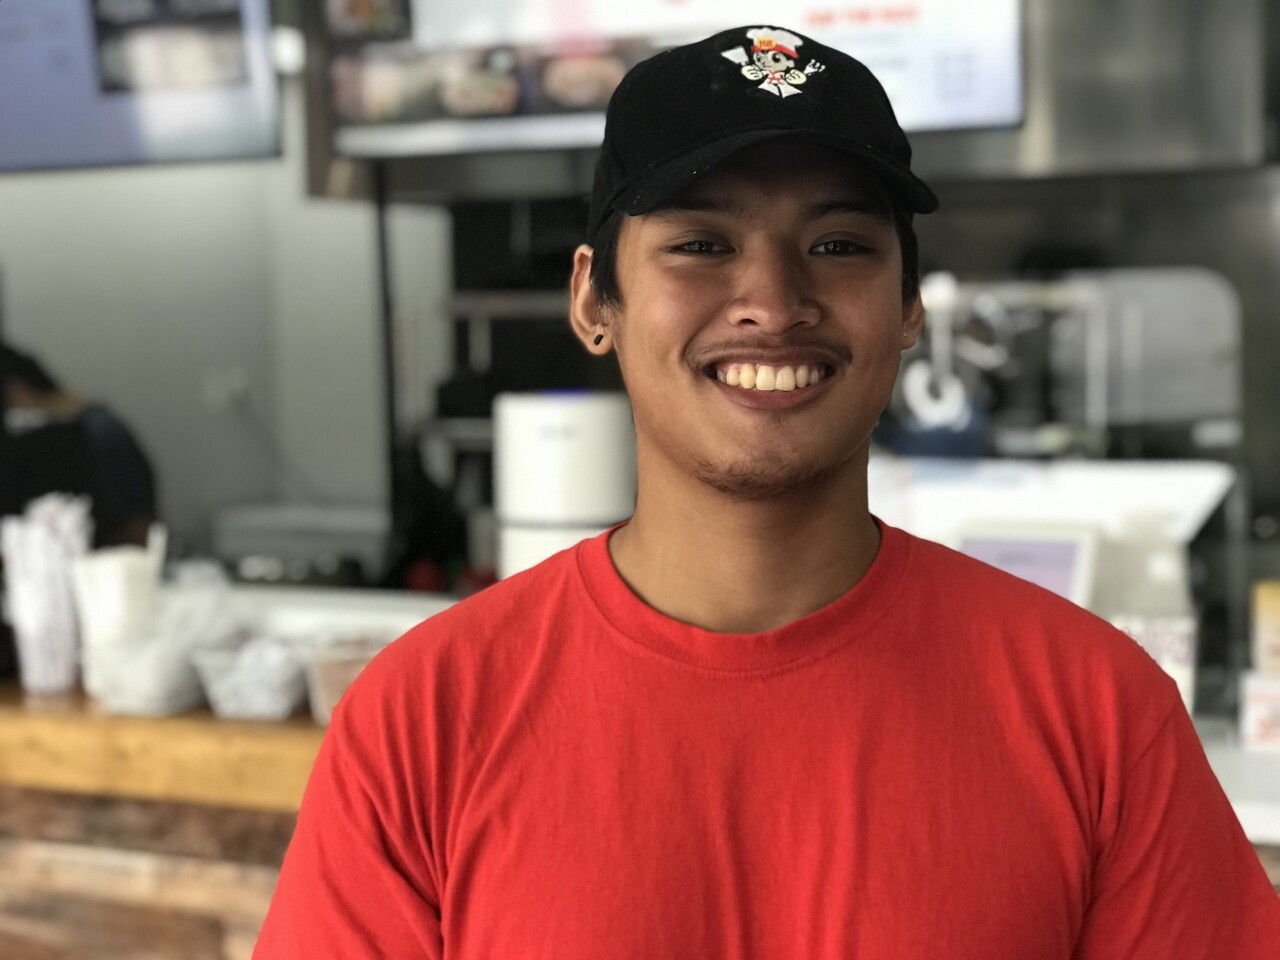 At just 19, Julius Sayavong already owns his own restaurant.